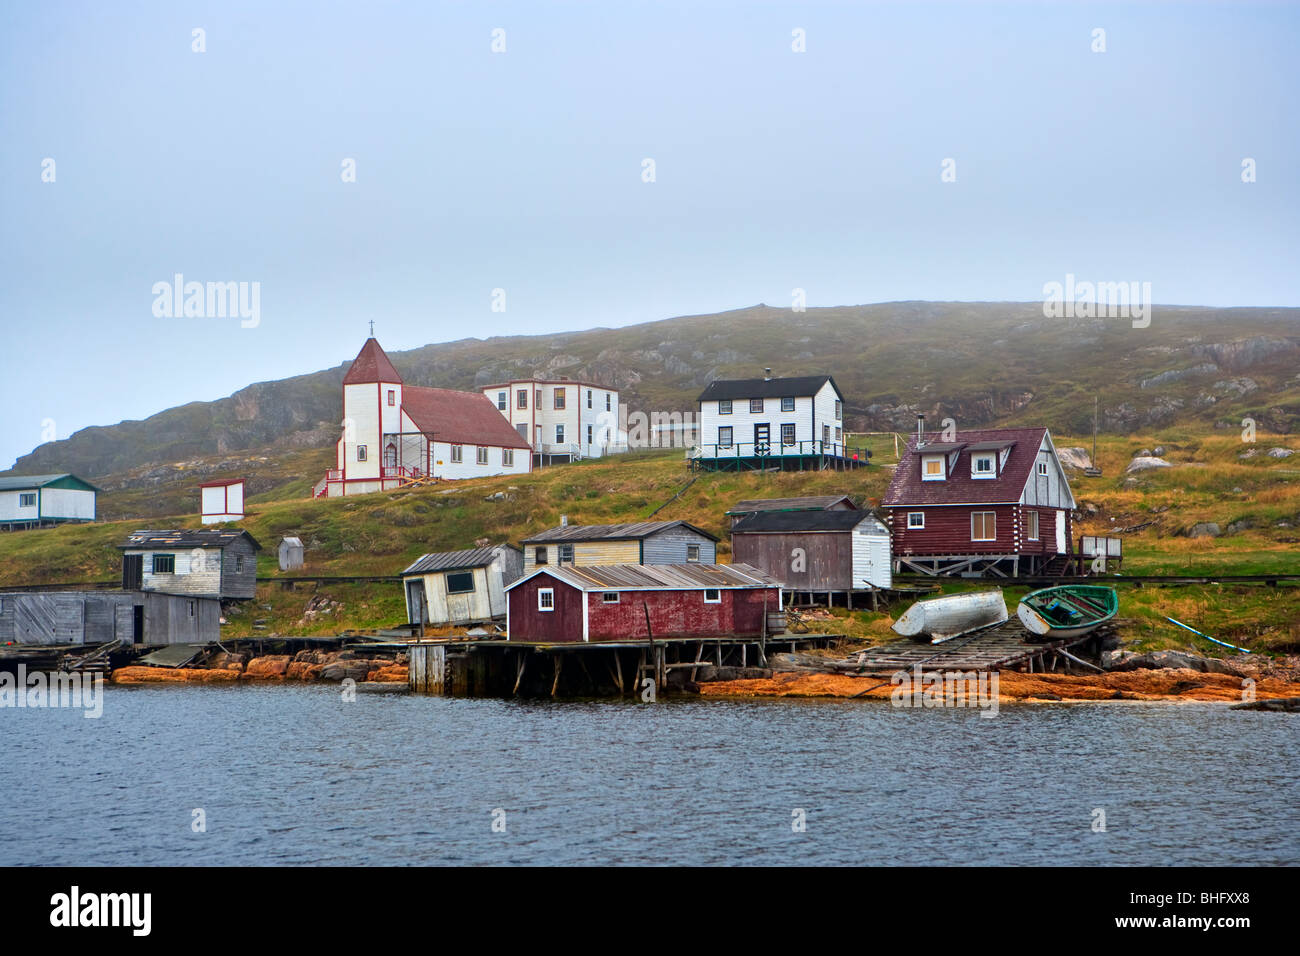 The historic fishing village of Battle Harbour situated on Battle Island at the entrance to the St Lewis Inlet. - Stock Image